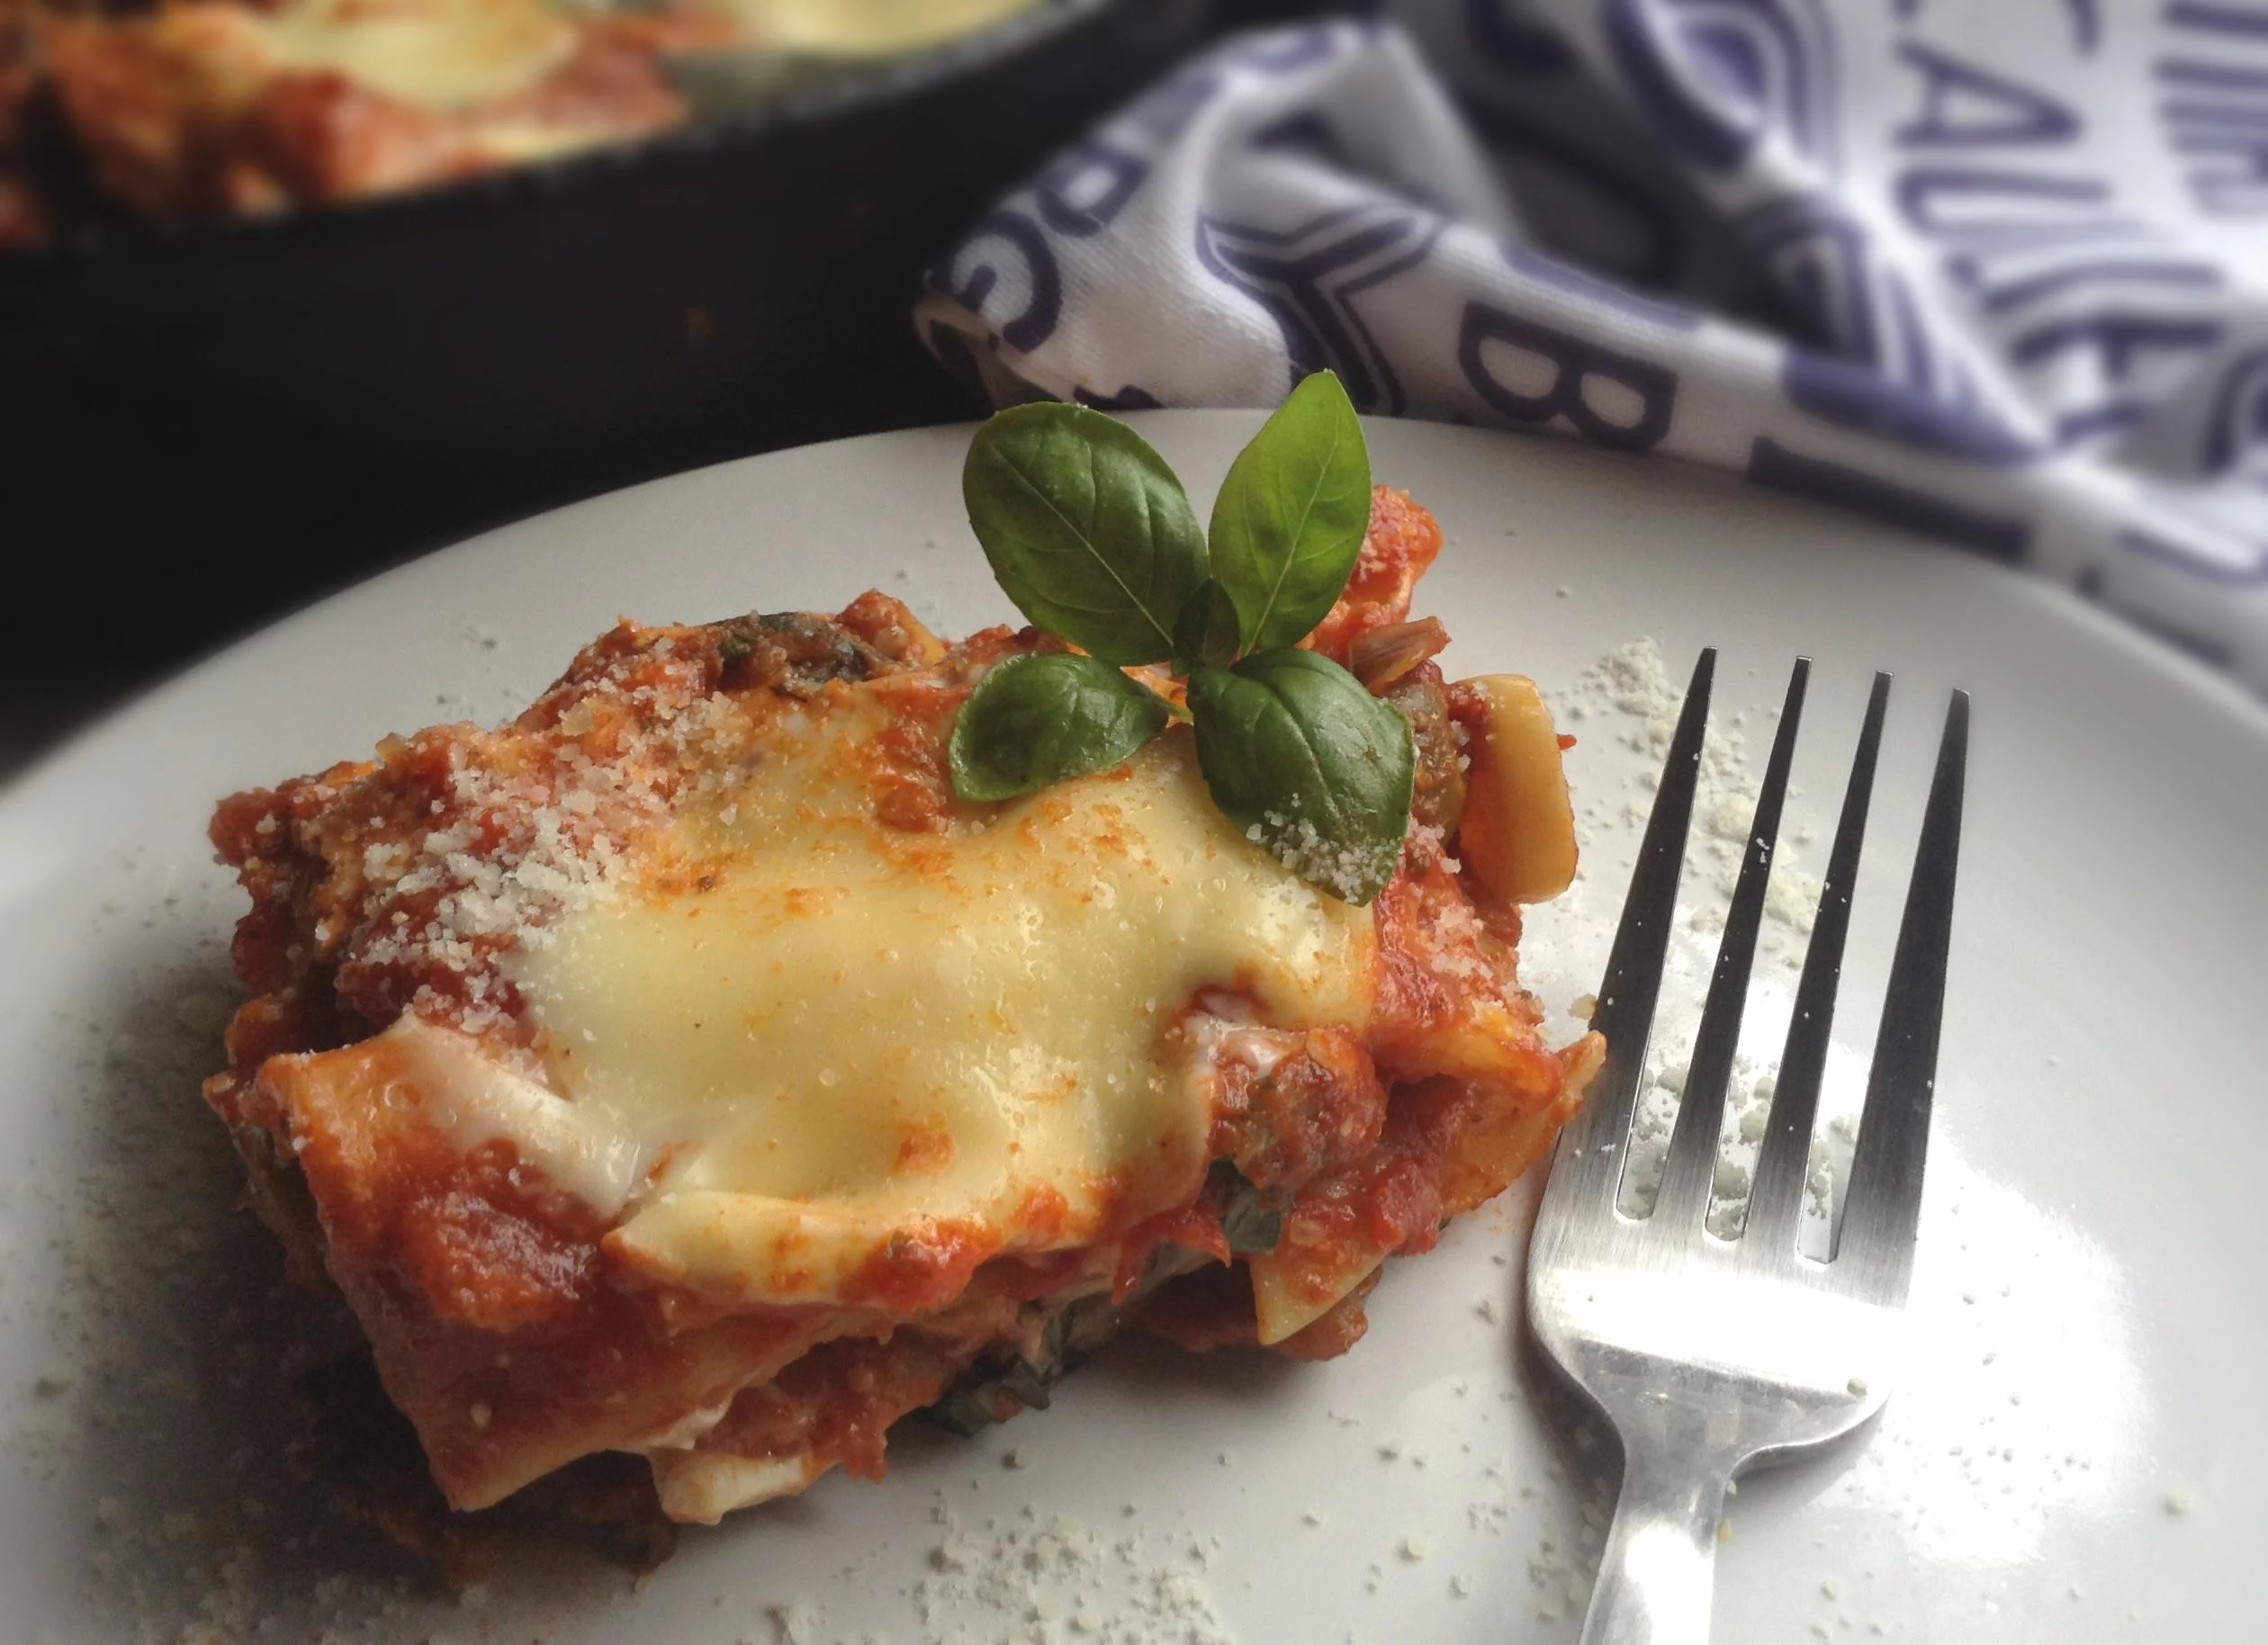 Quick and easy to make in just 30 minutes, Stove Top Vegetable Lasagna is a one pot dinner that is hearty and comforting.